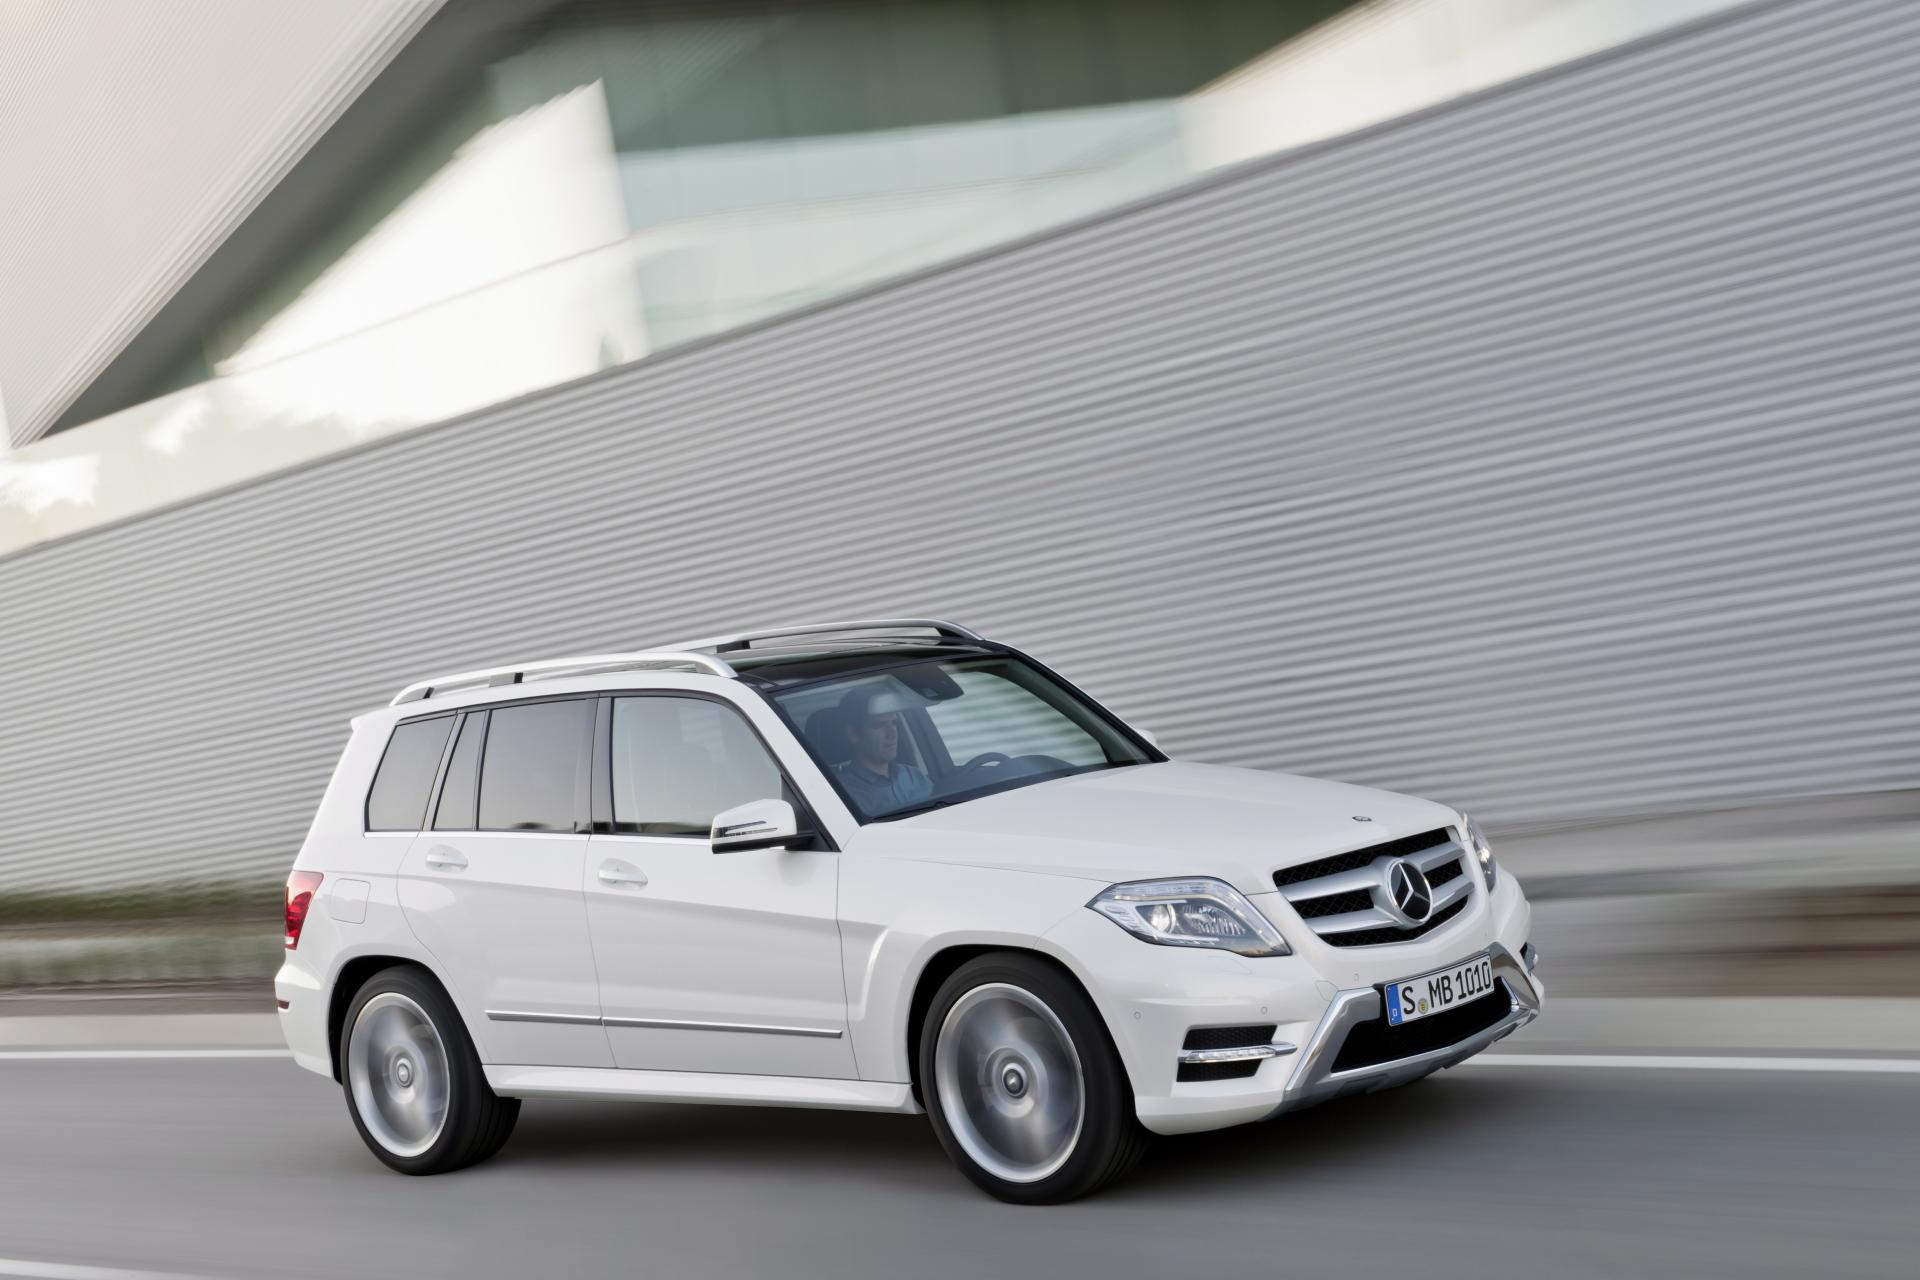 Mercedes benz glk class 2013 pictures information amp specs - Mercedes Benz Glk Class 2013 Pictures Information Amp Specs 21